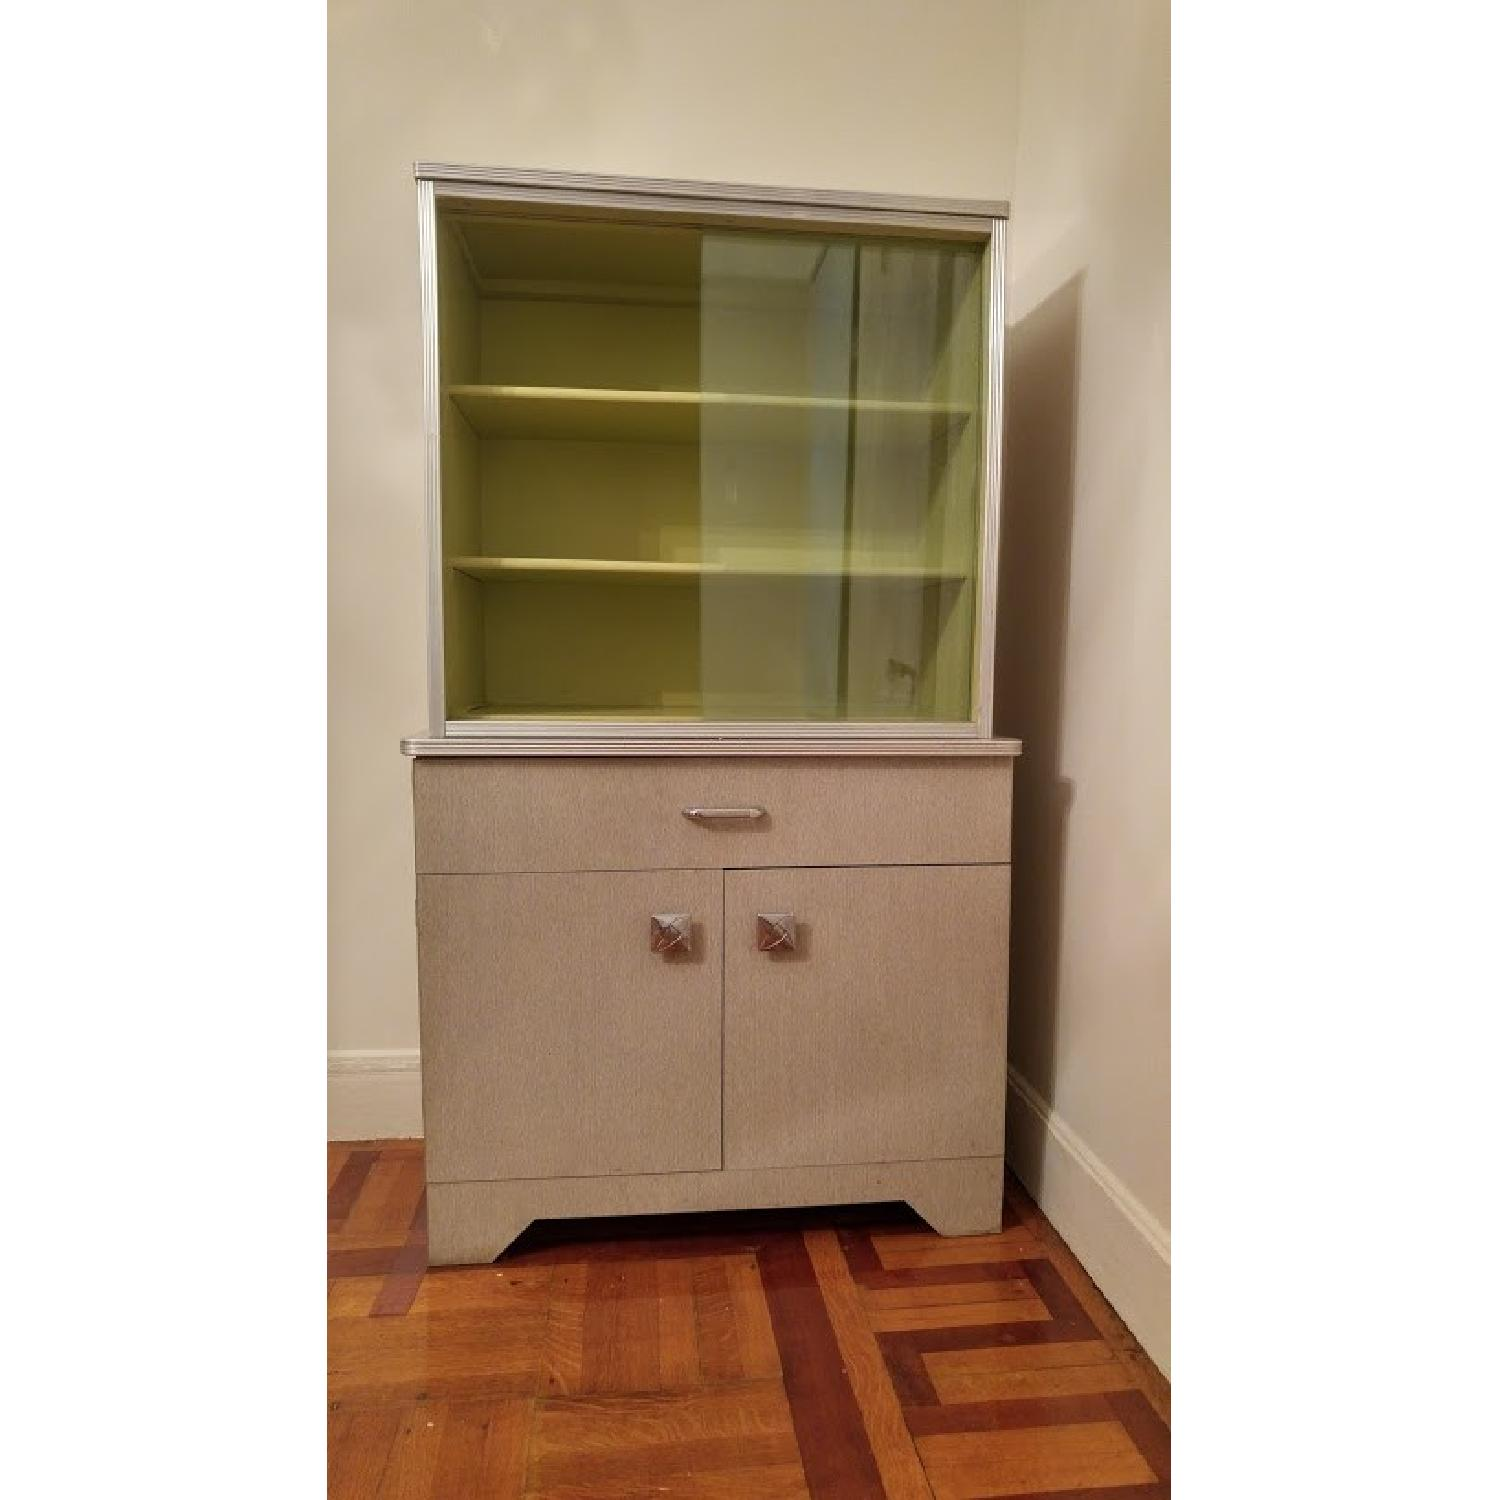 1970's Avocado Green China Cabinet w/ Sliding Glass - image-2